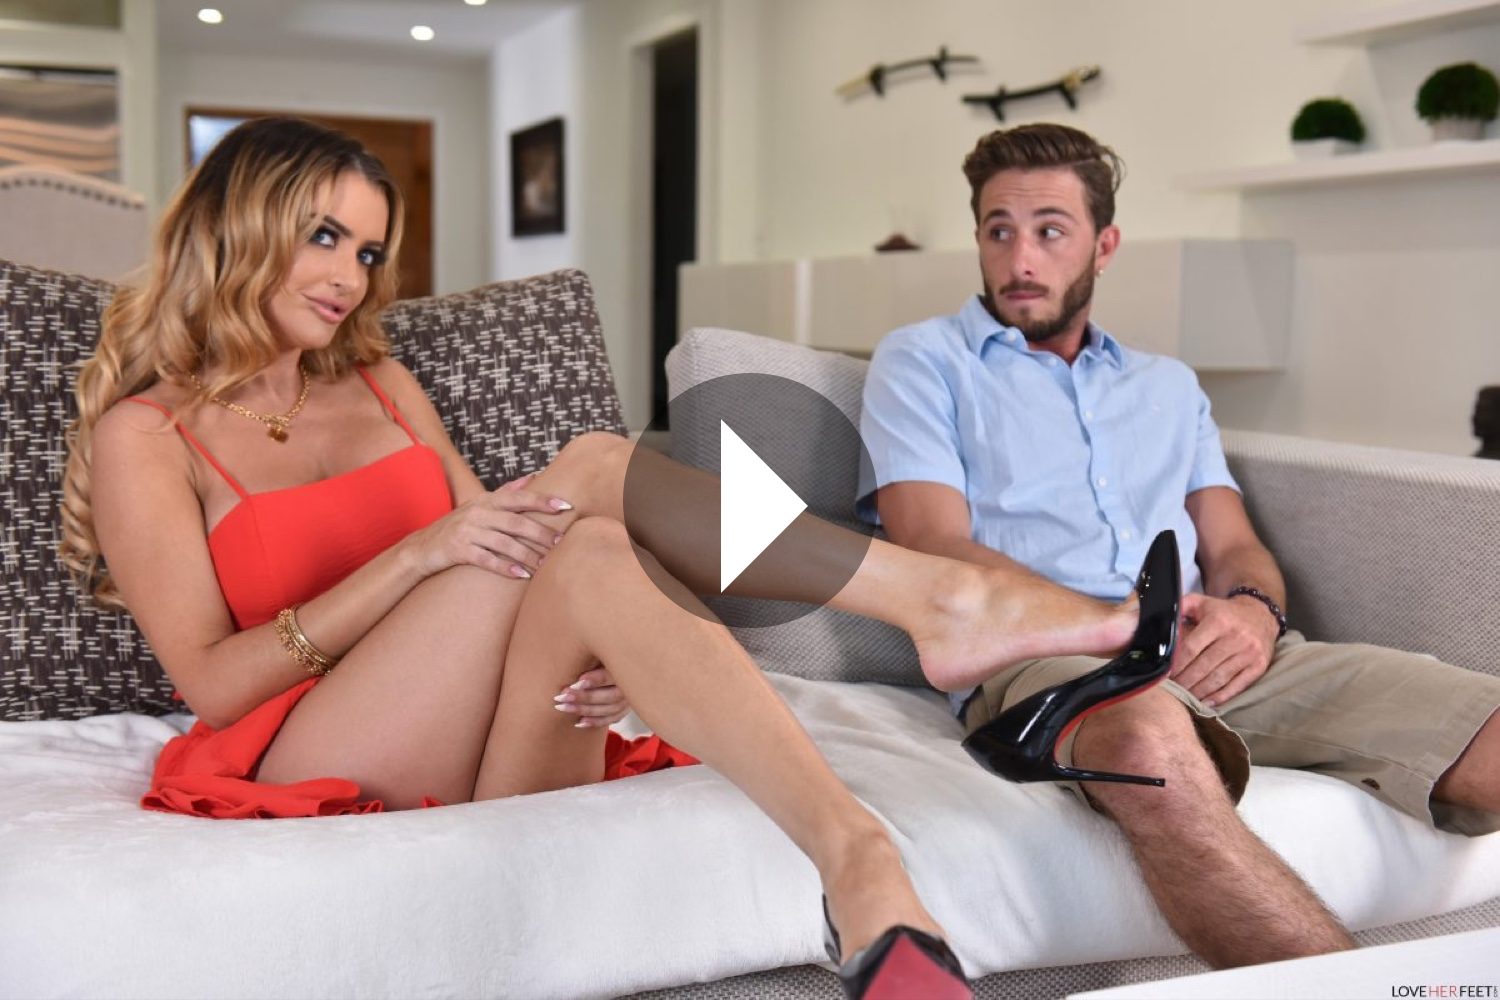 Linzee Ryder Teases With Her Feet and High Heels - Linzee Ryder Legs - Linzee Ryder Feet